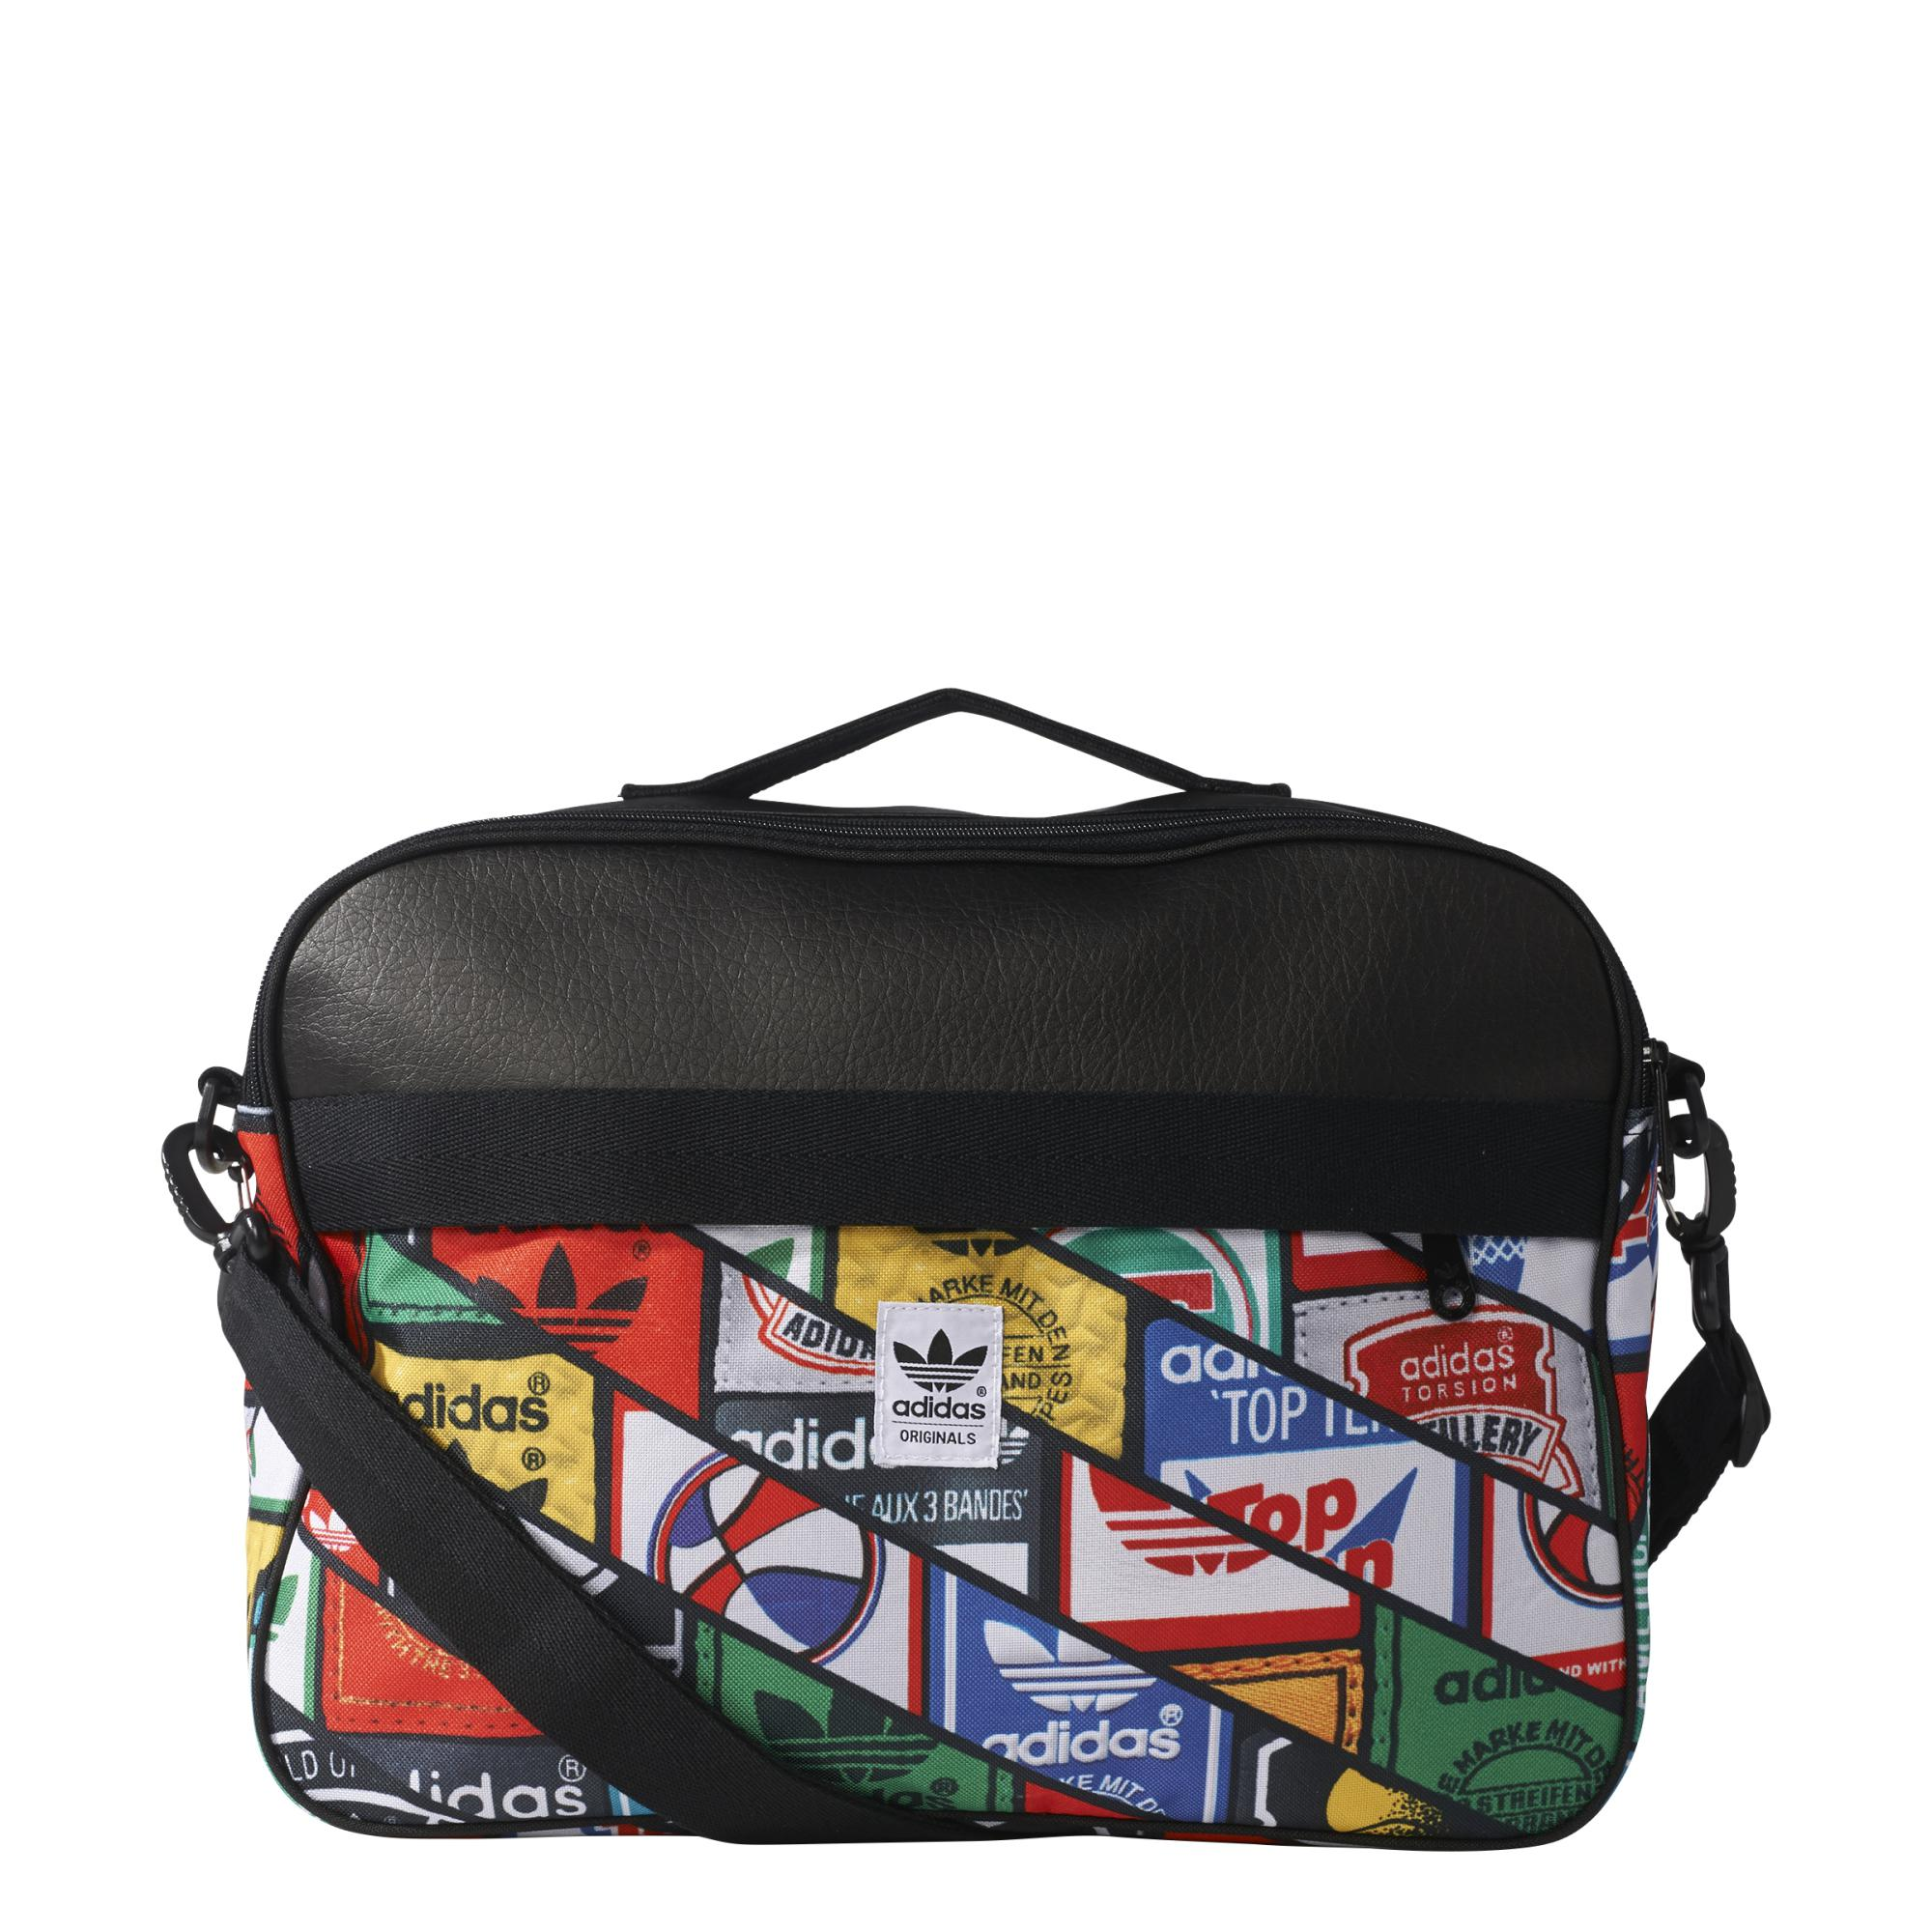 Airliner Originals Labels Bolso Tonguenegro Graphic Adidas nk8Nw0OPX